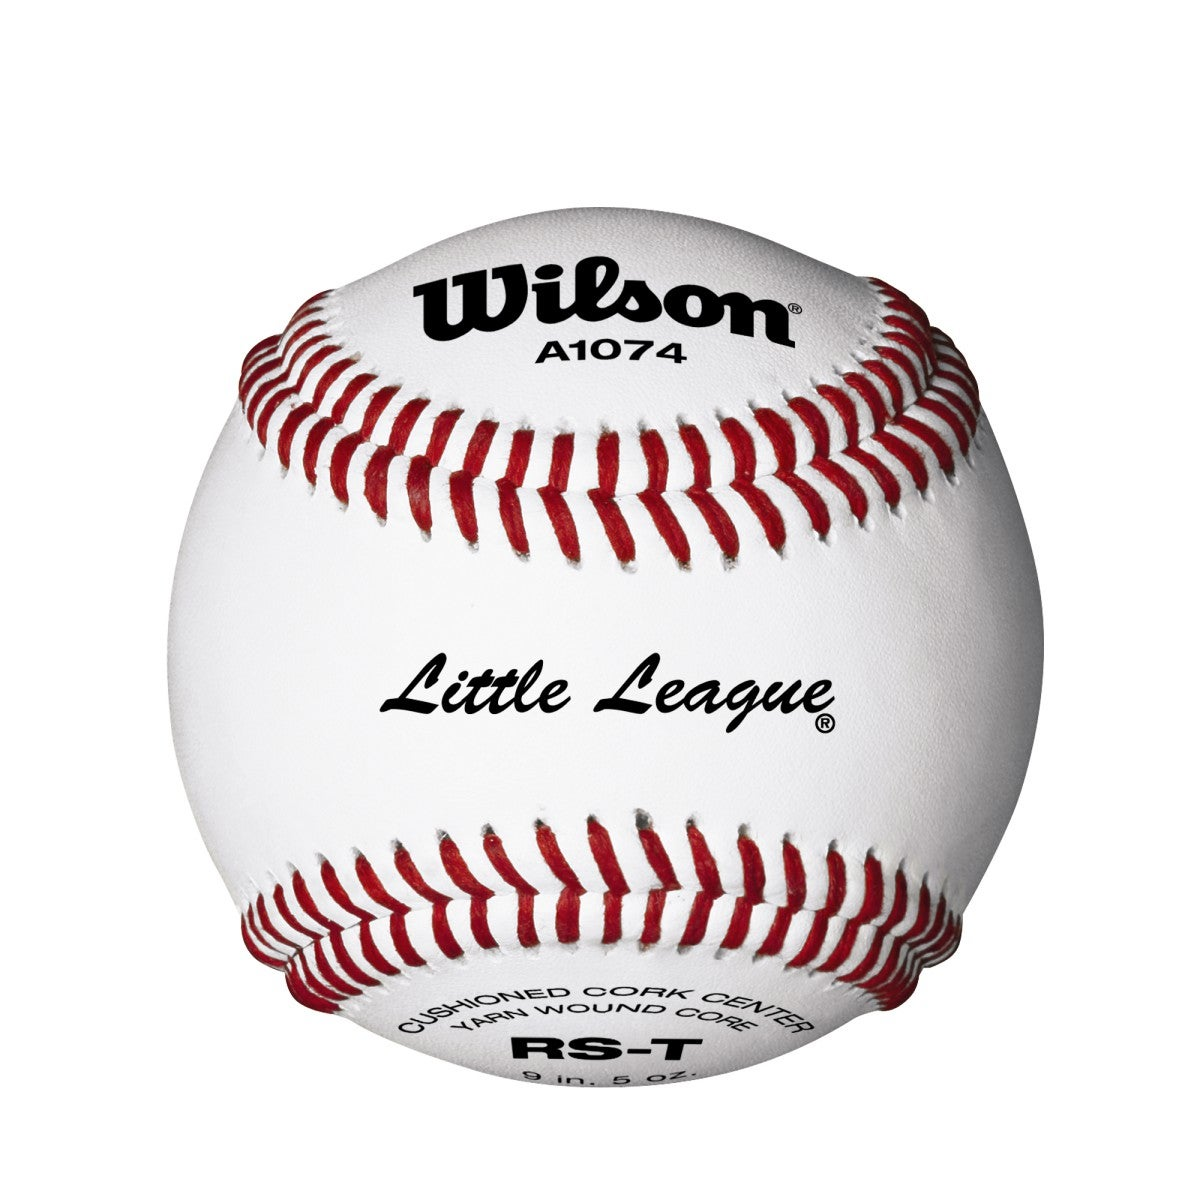 A1074 Tournament Series Little League Baseballs